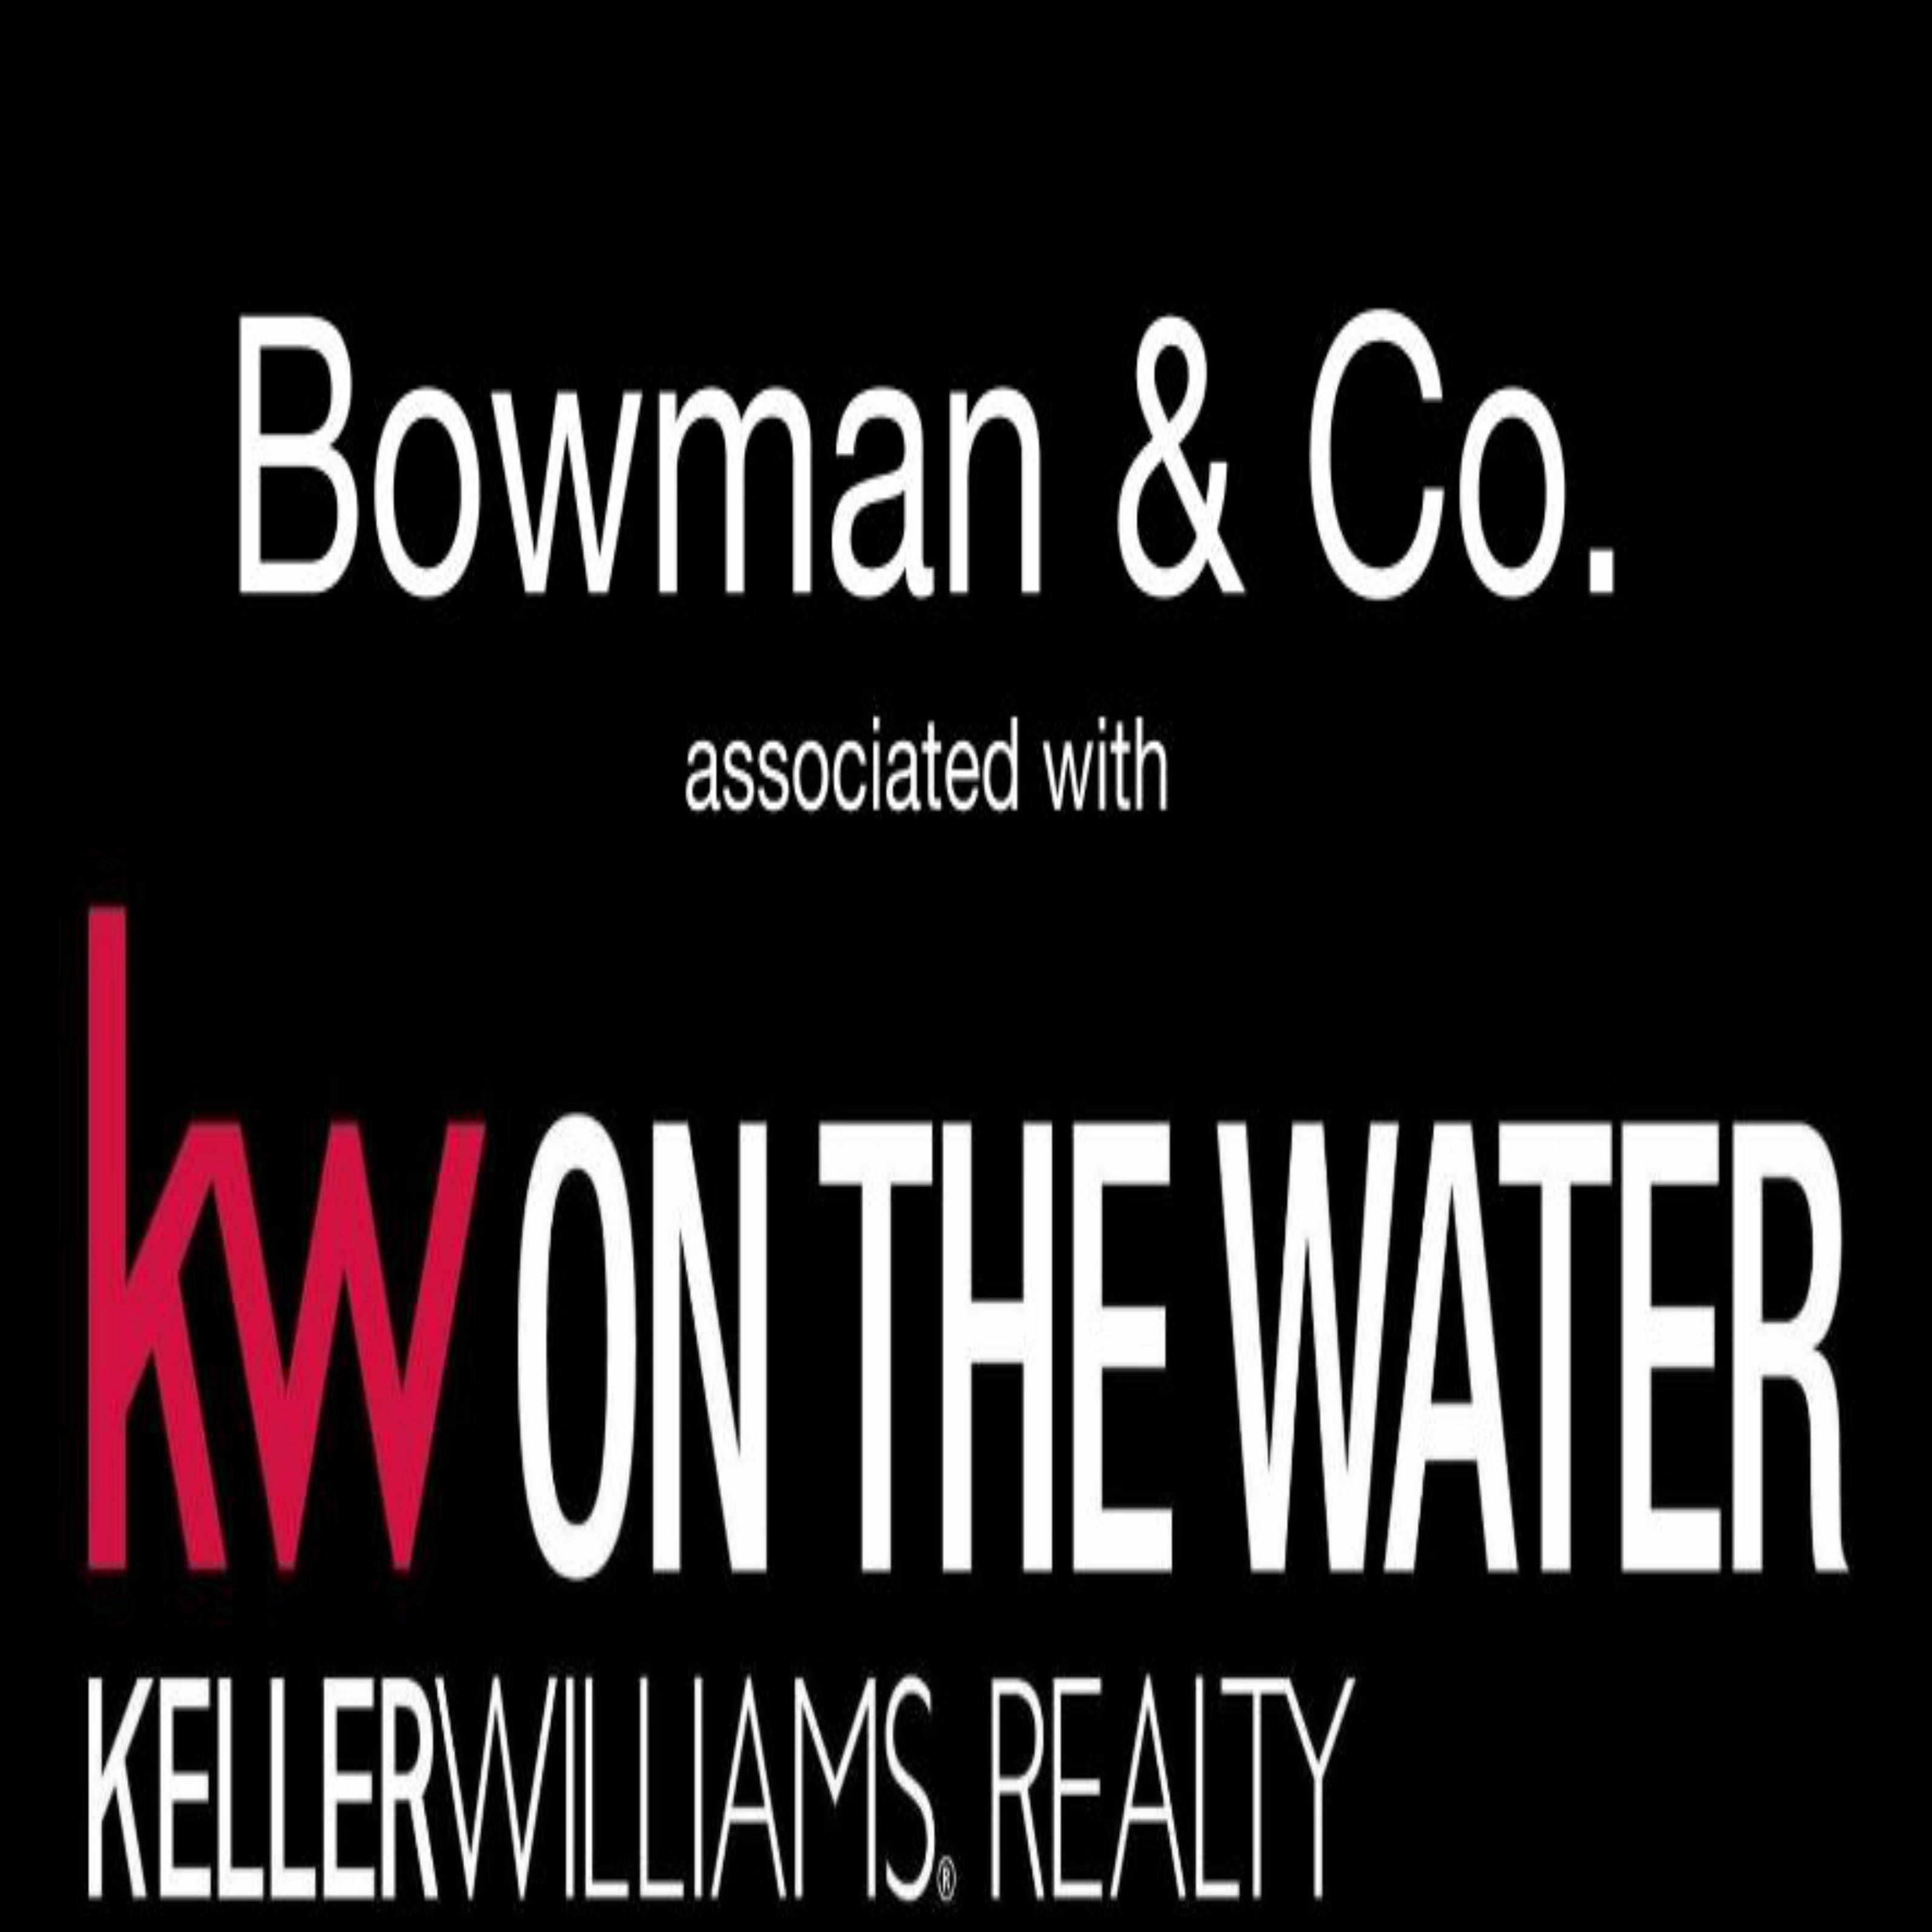 Keller Williams Realty - Bowman & Co.